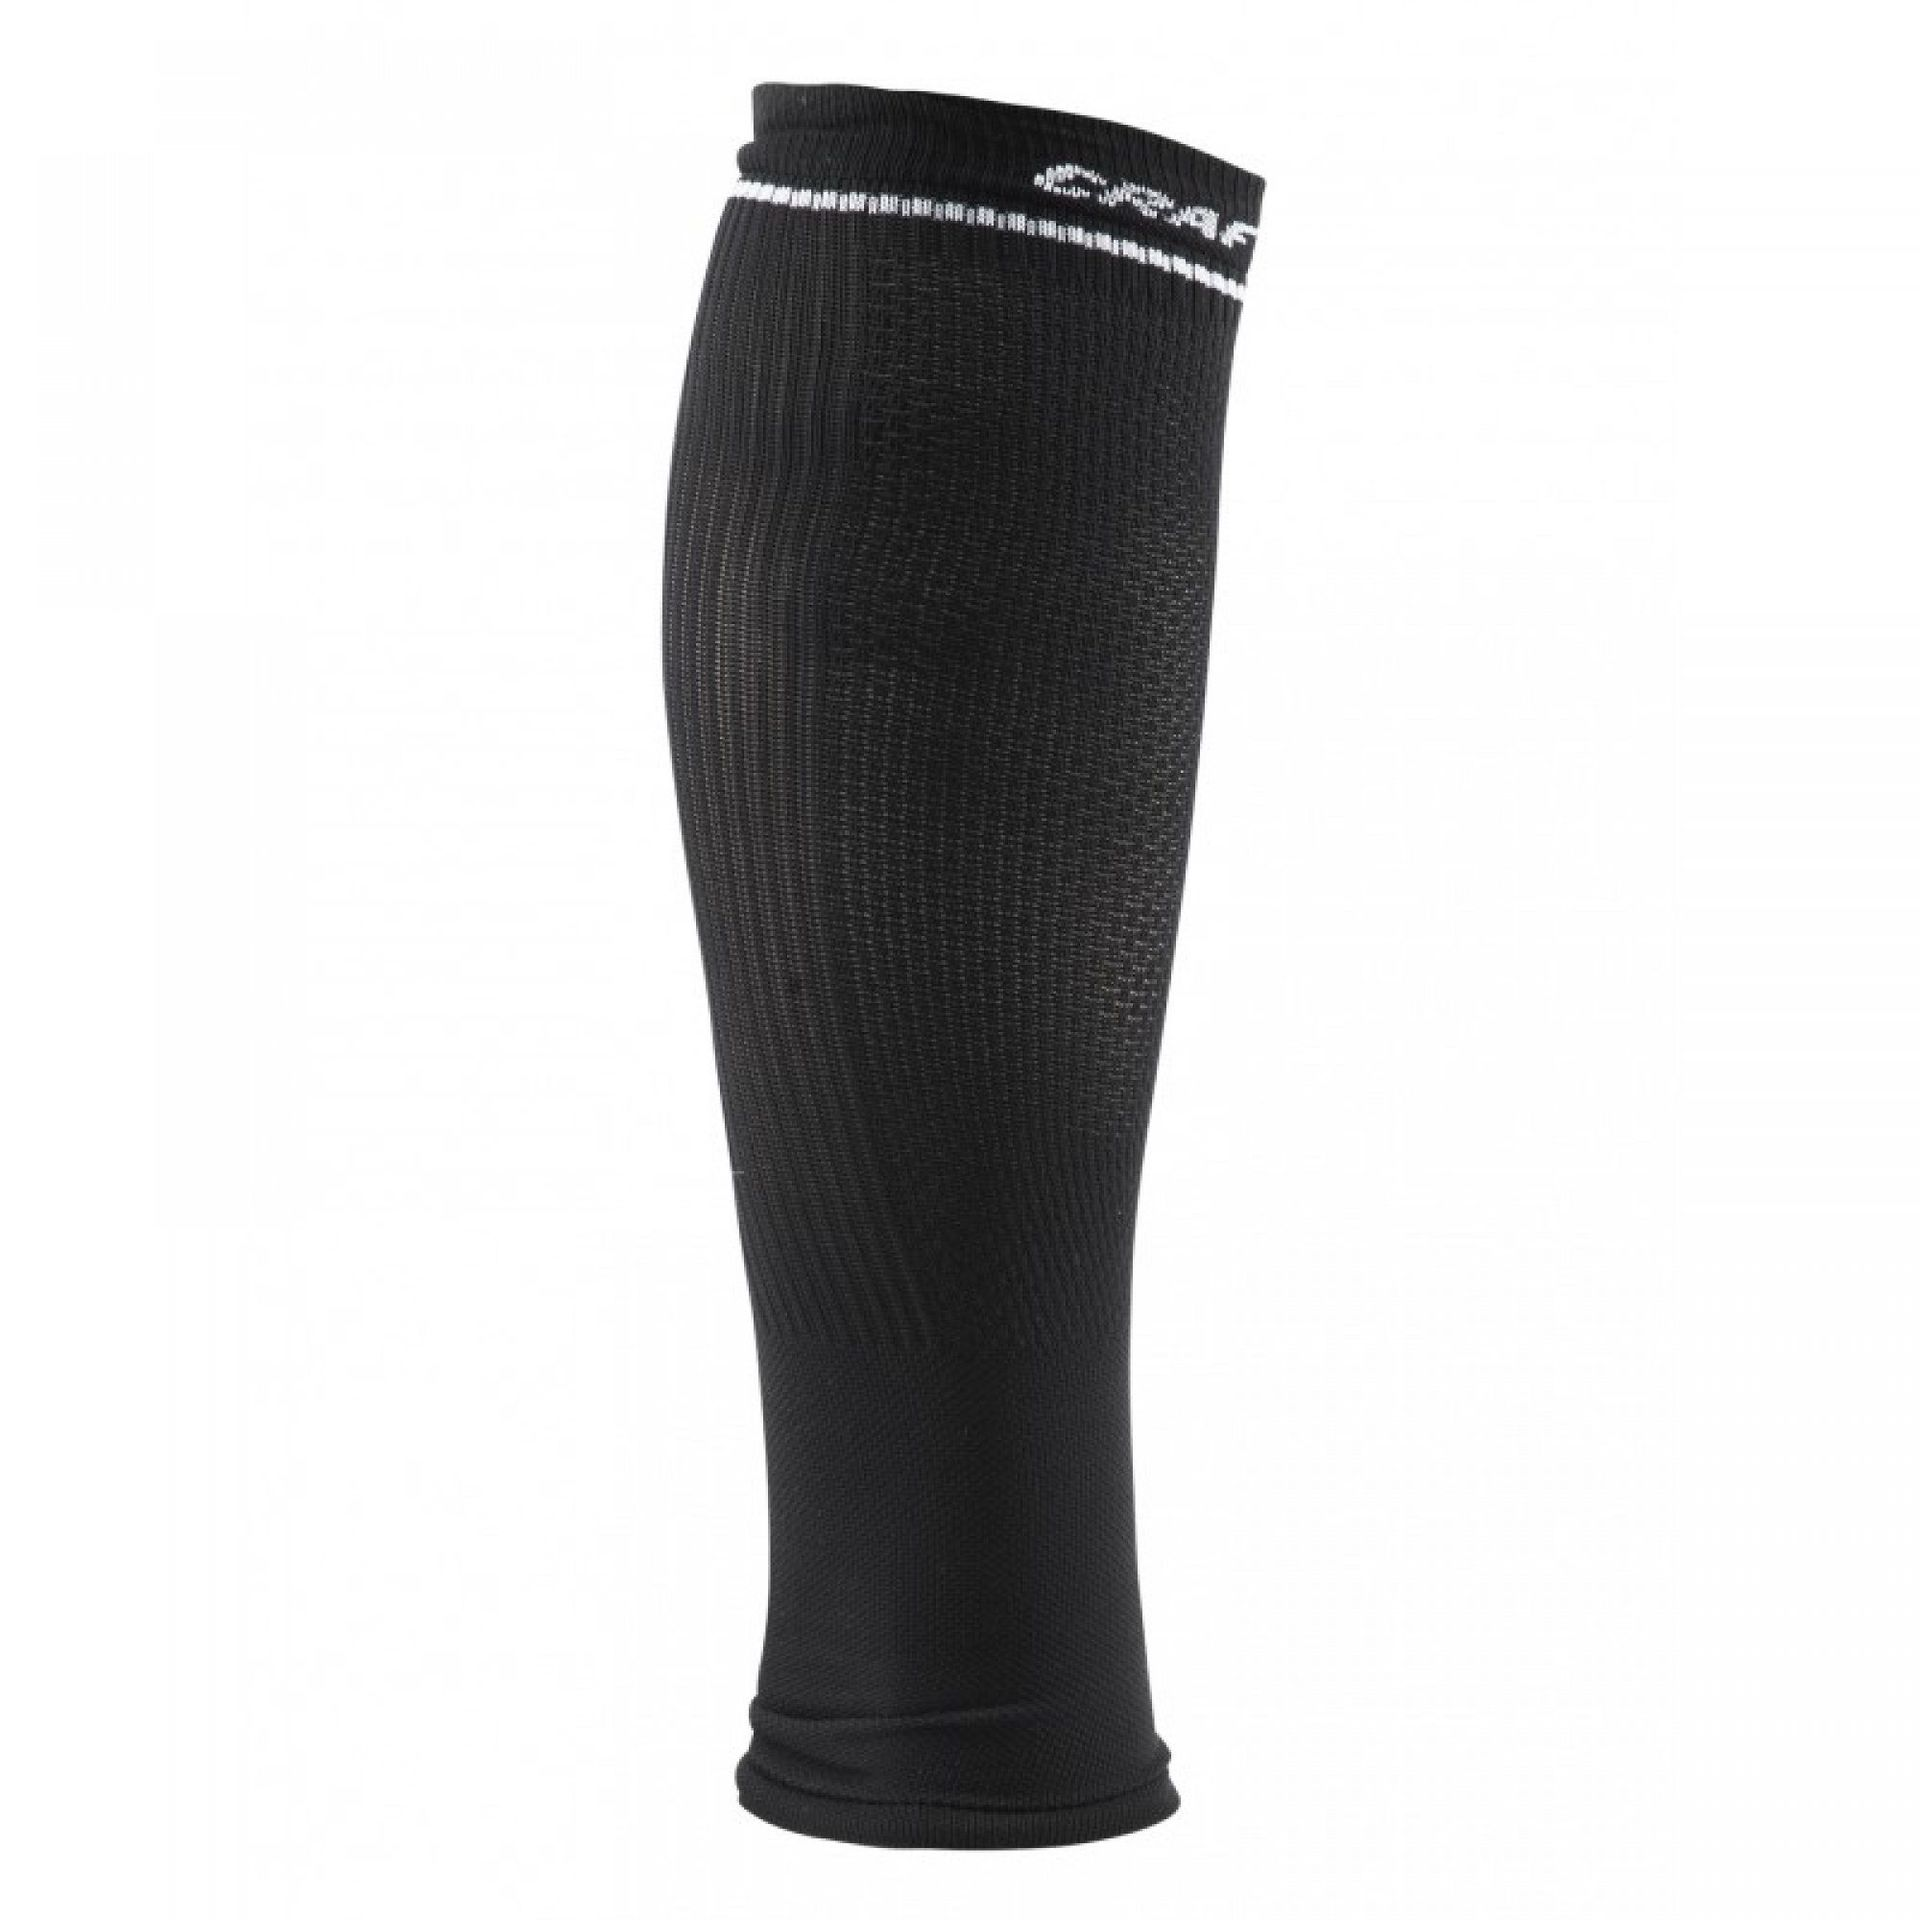 OPASKI KOMPRESYJNE CRAFT COMPRESSION CALVES 9900